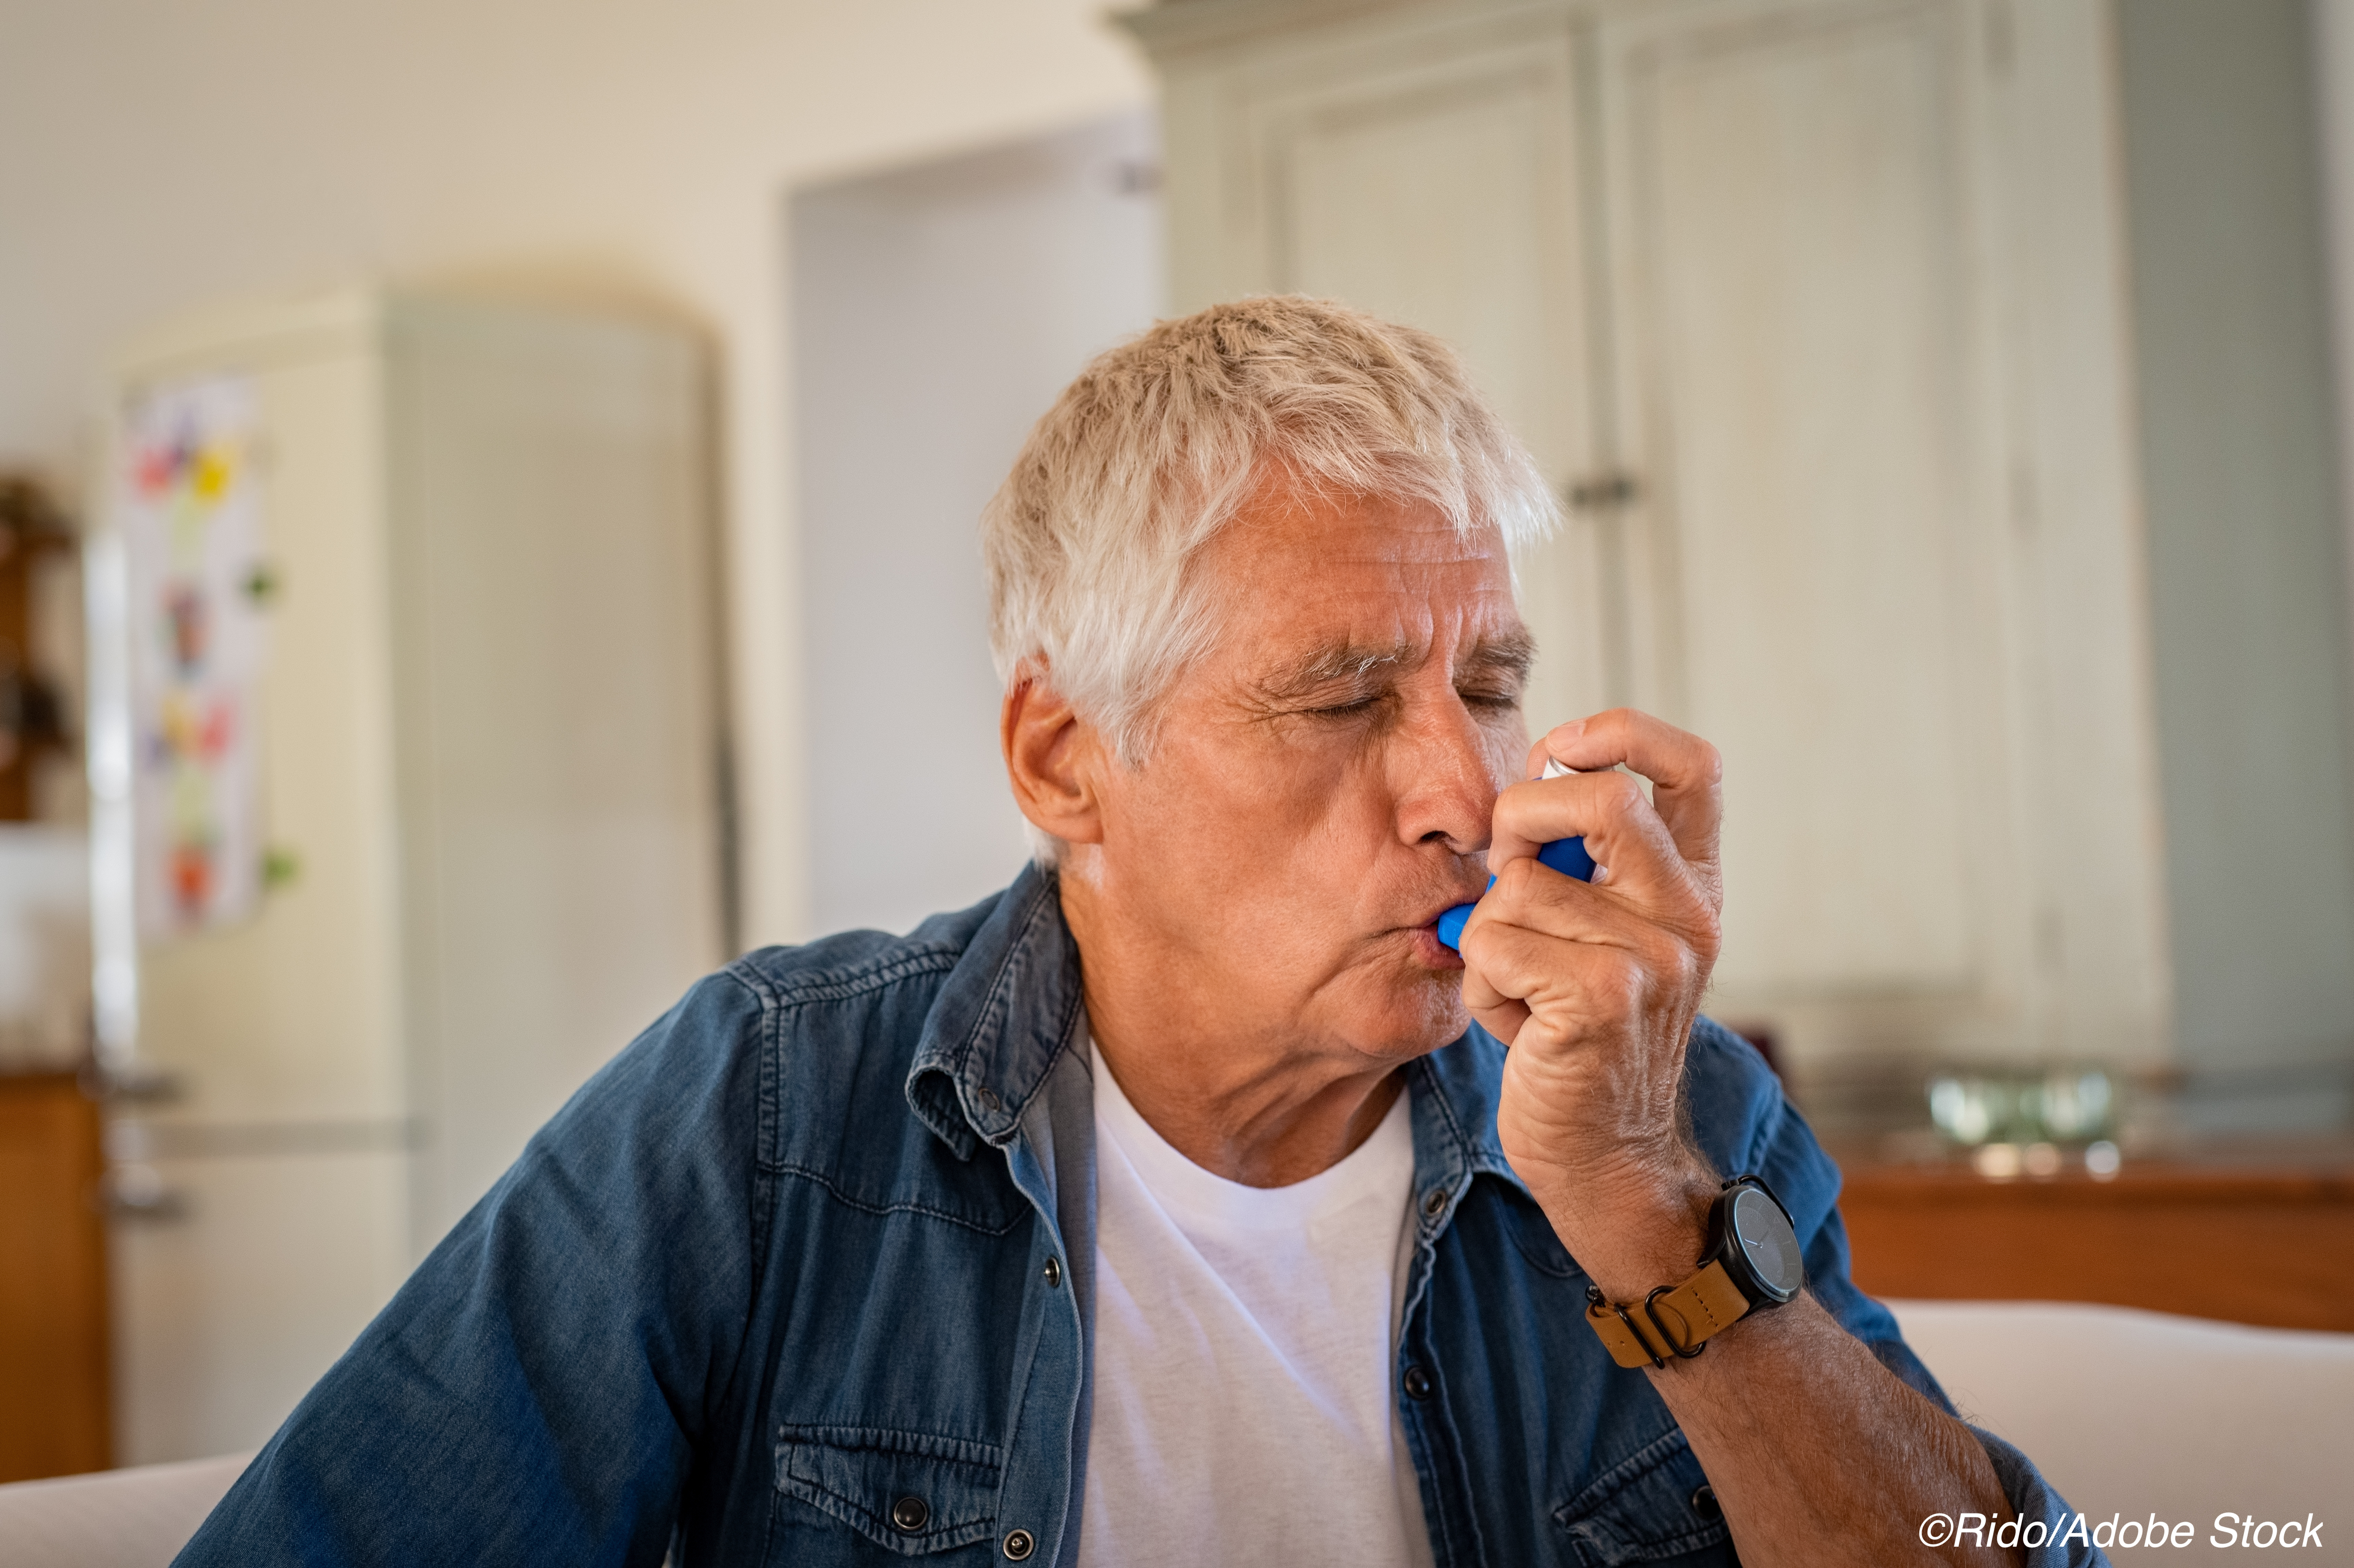 Biomarker-Based Asthma Treatment Fails to Reduce ICS Use in Study